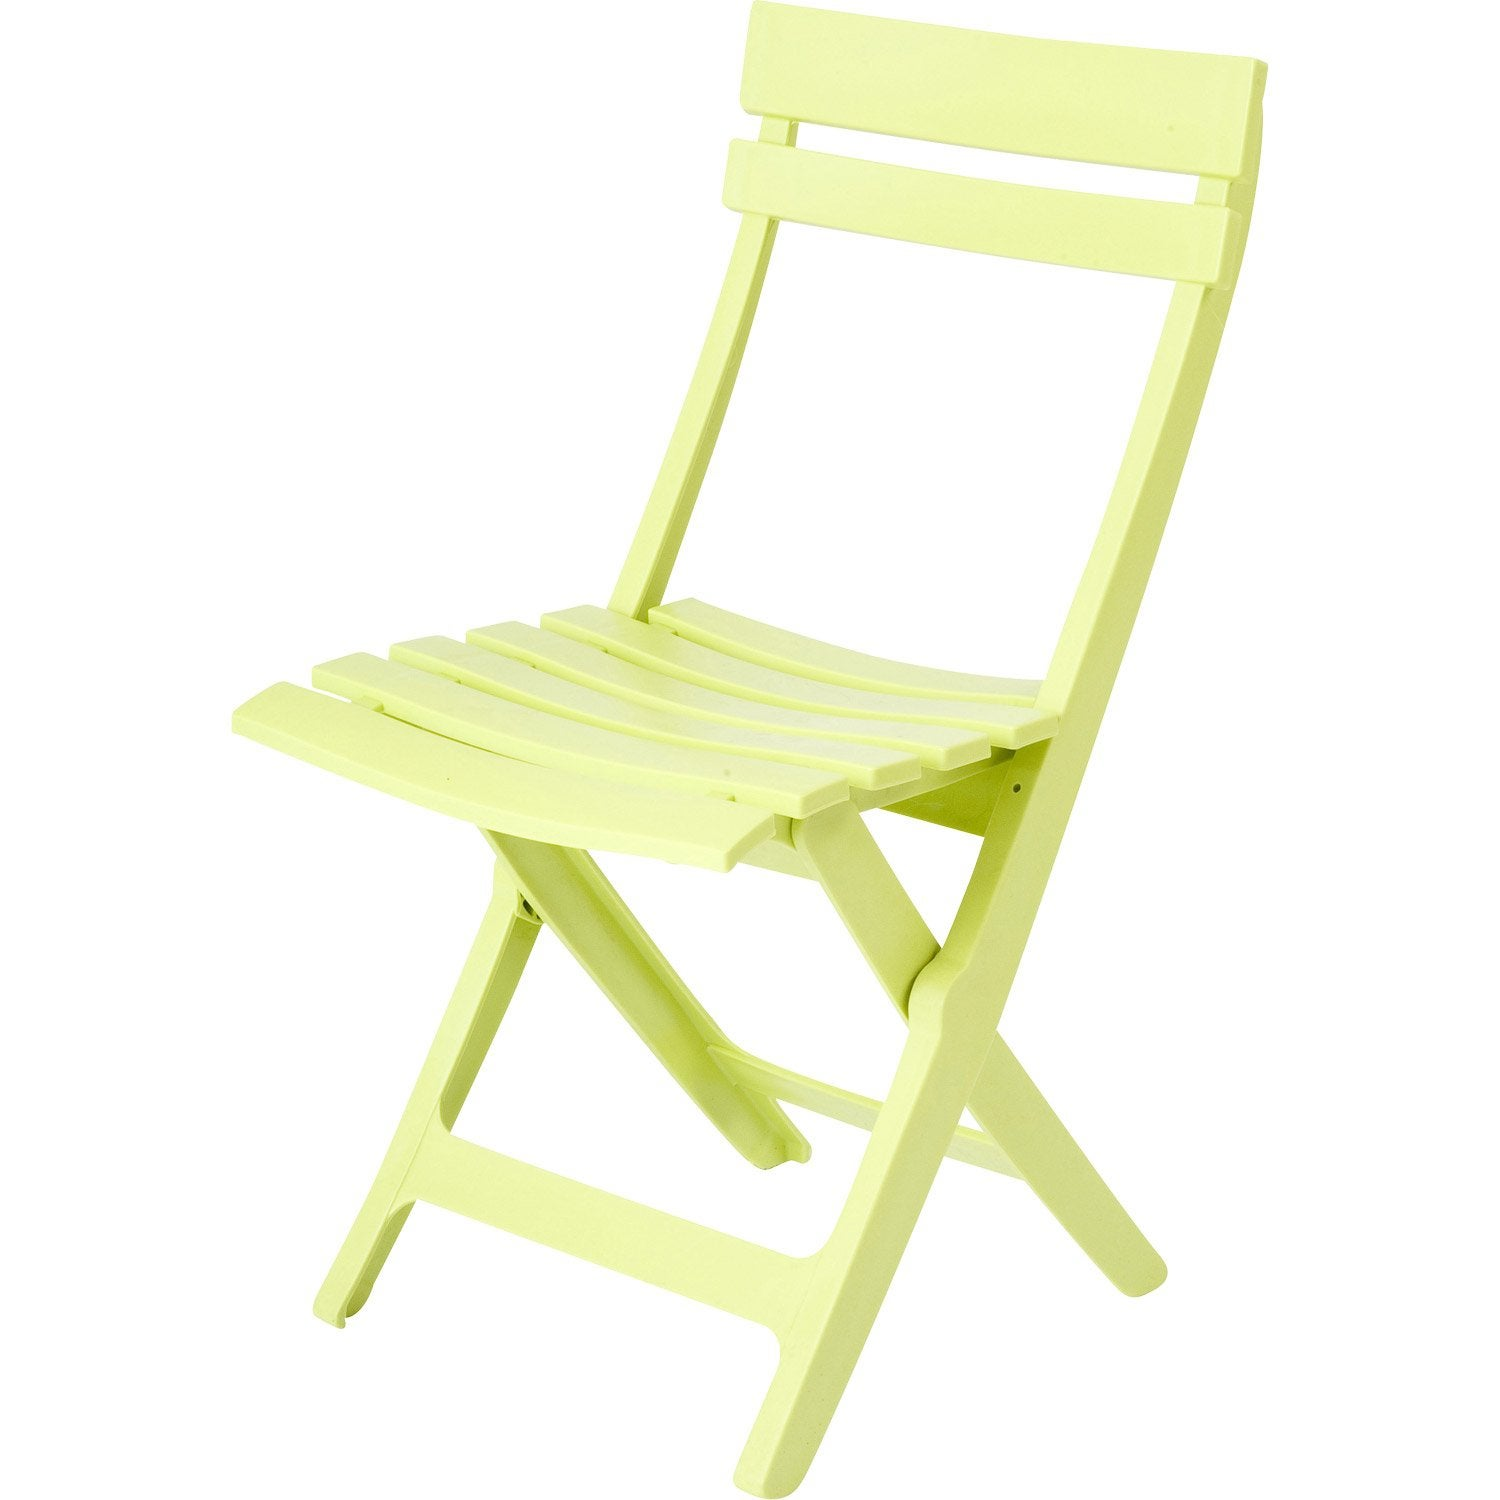 Chaise pliante leroy merlin 28 images chaise pliante for Chaise longue de jardin en bois